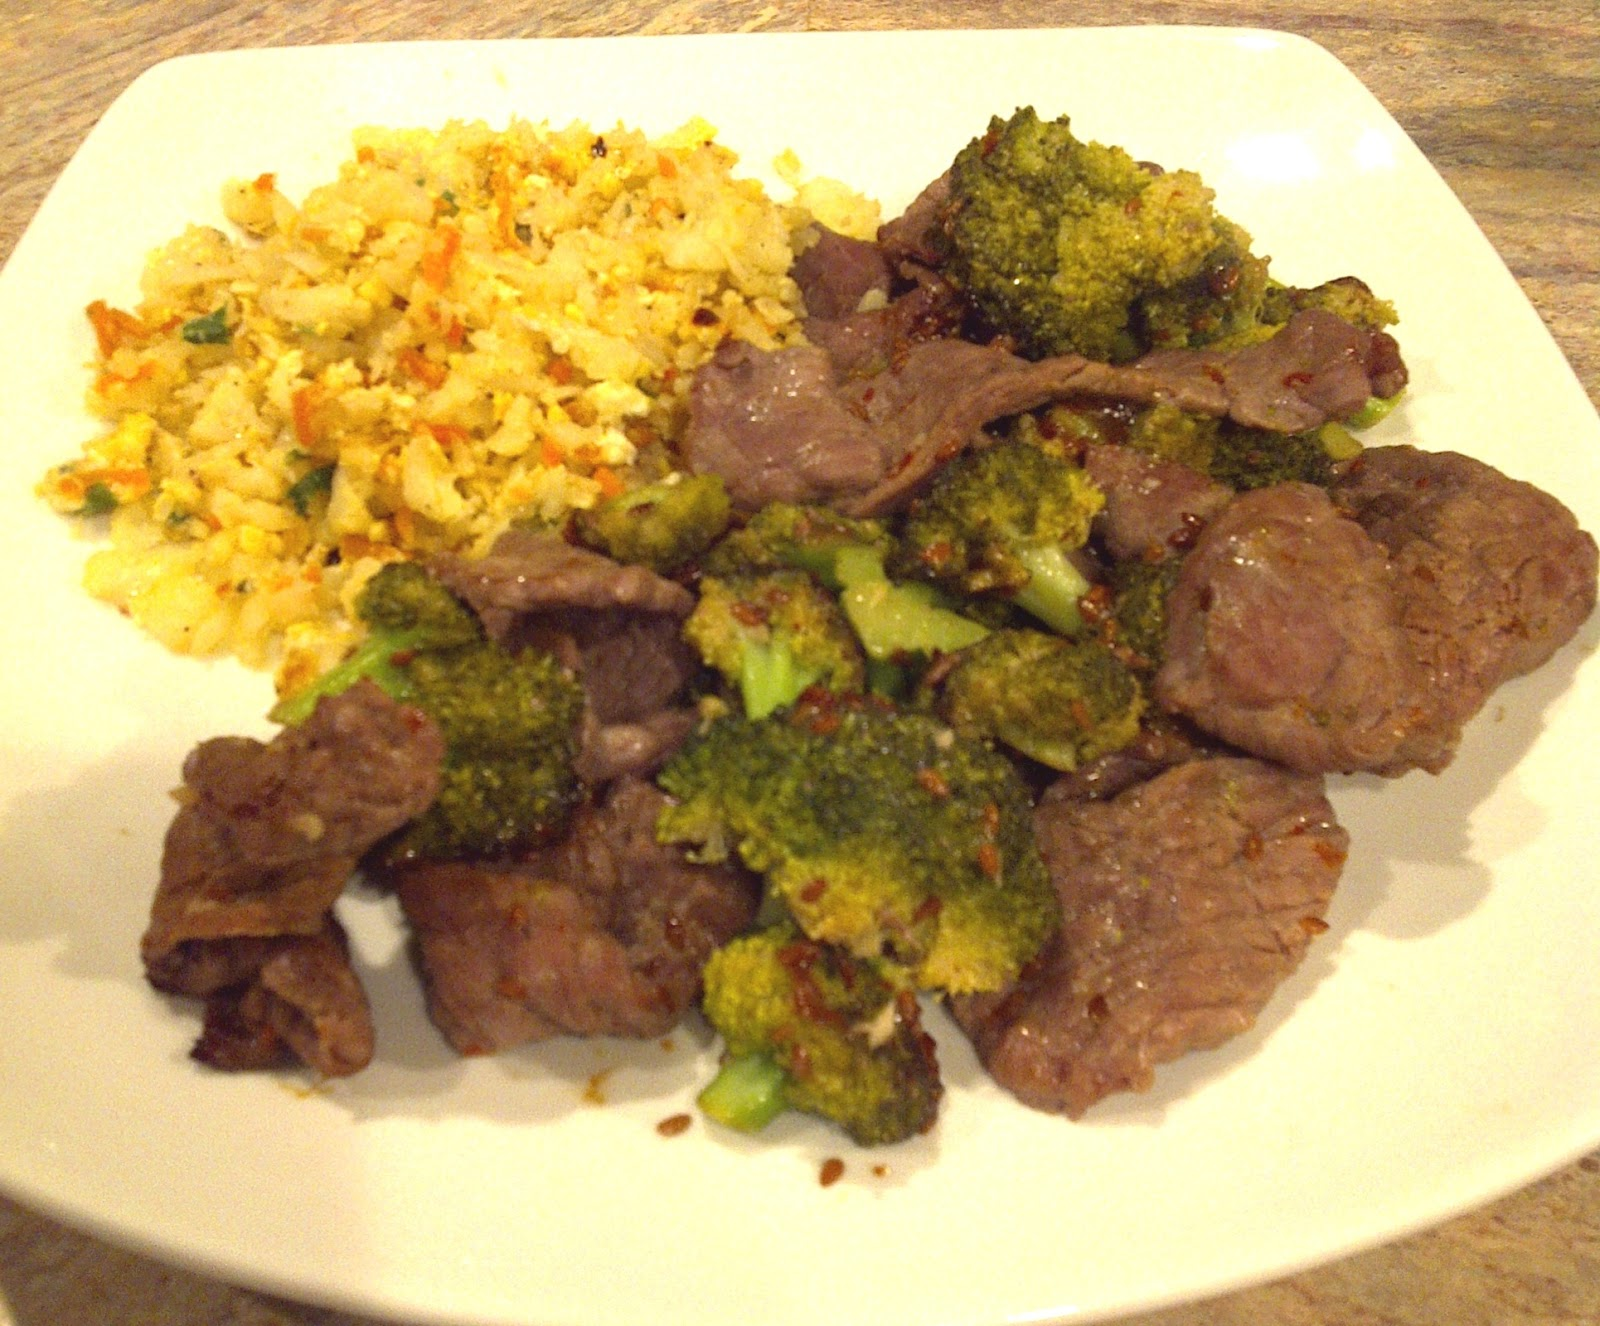 ... And Zone Meals: Broccoli & Beef Stir Fry With Fried Cauliflower Rice